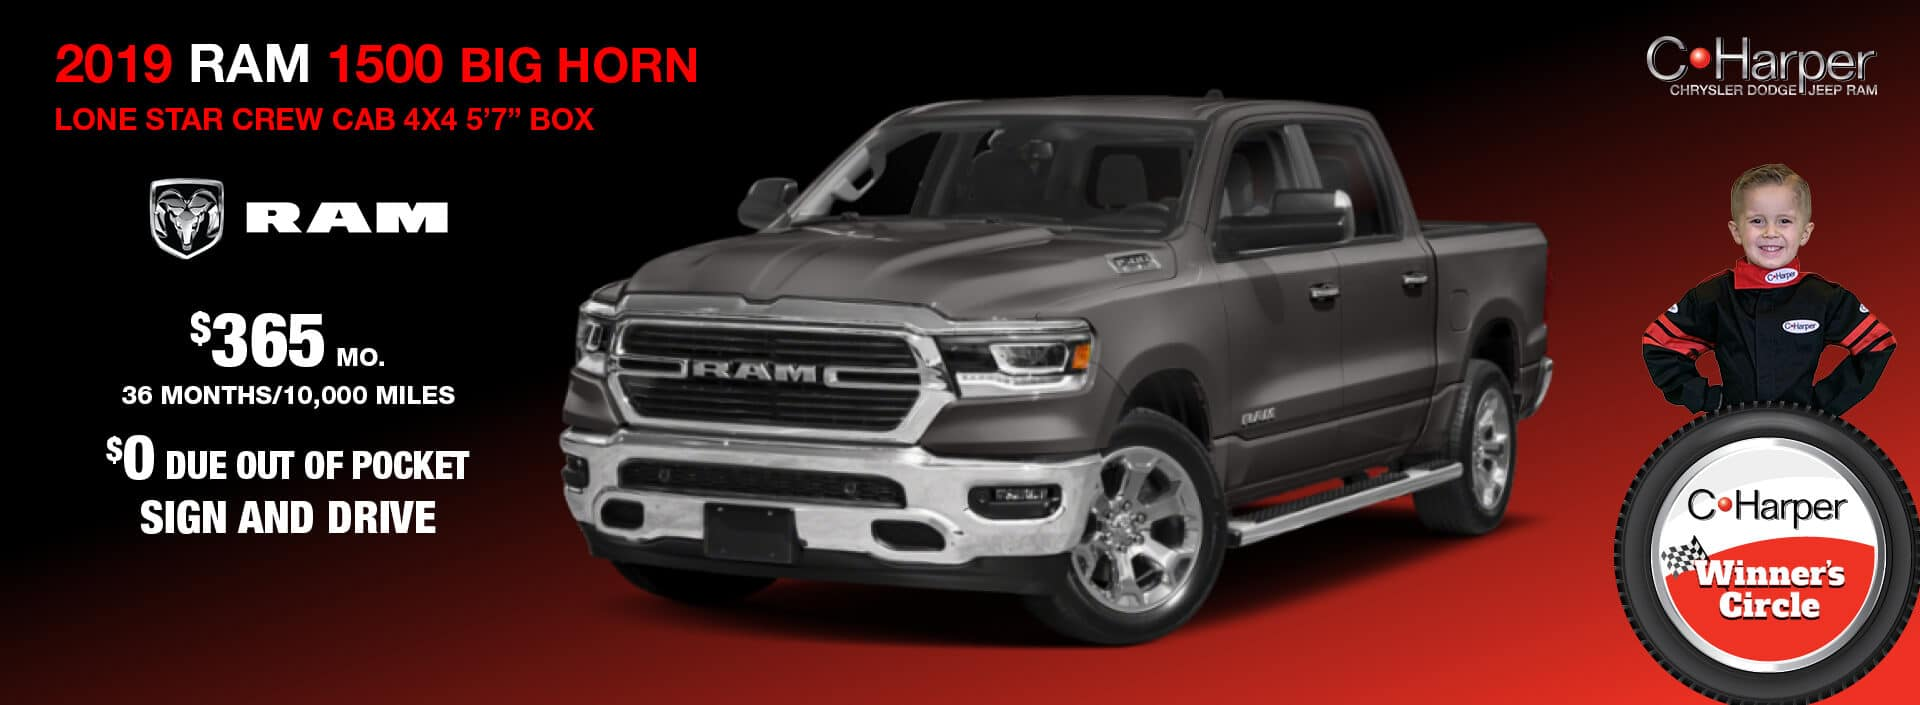 "2019 Ram 1500 Big Horn Lone Star Crew Cab 4X4 5' 7"" Box"